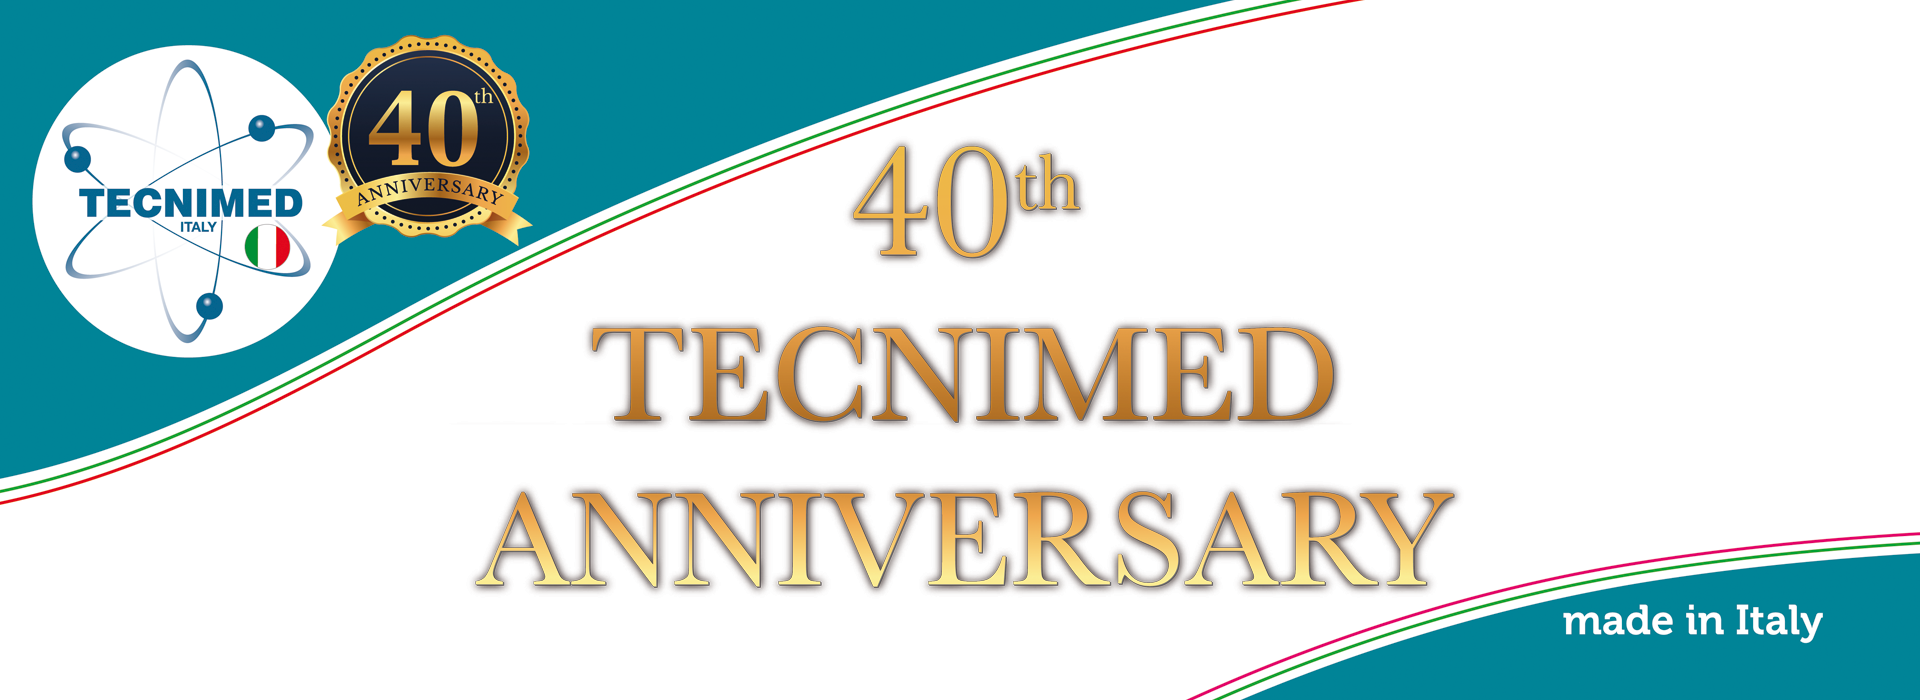 Tecnimed-40th